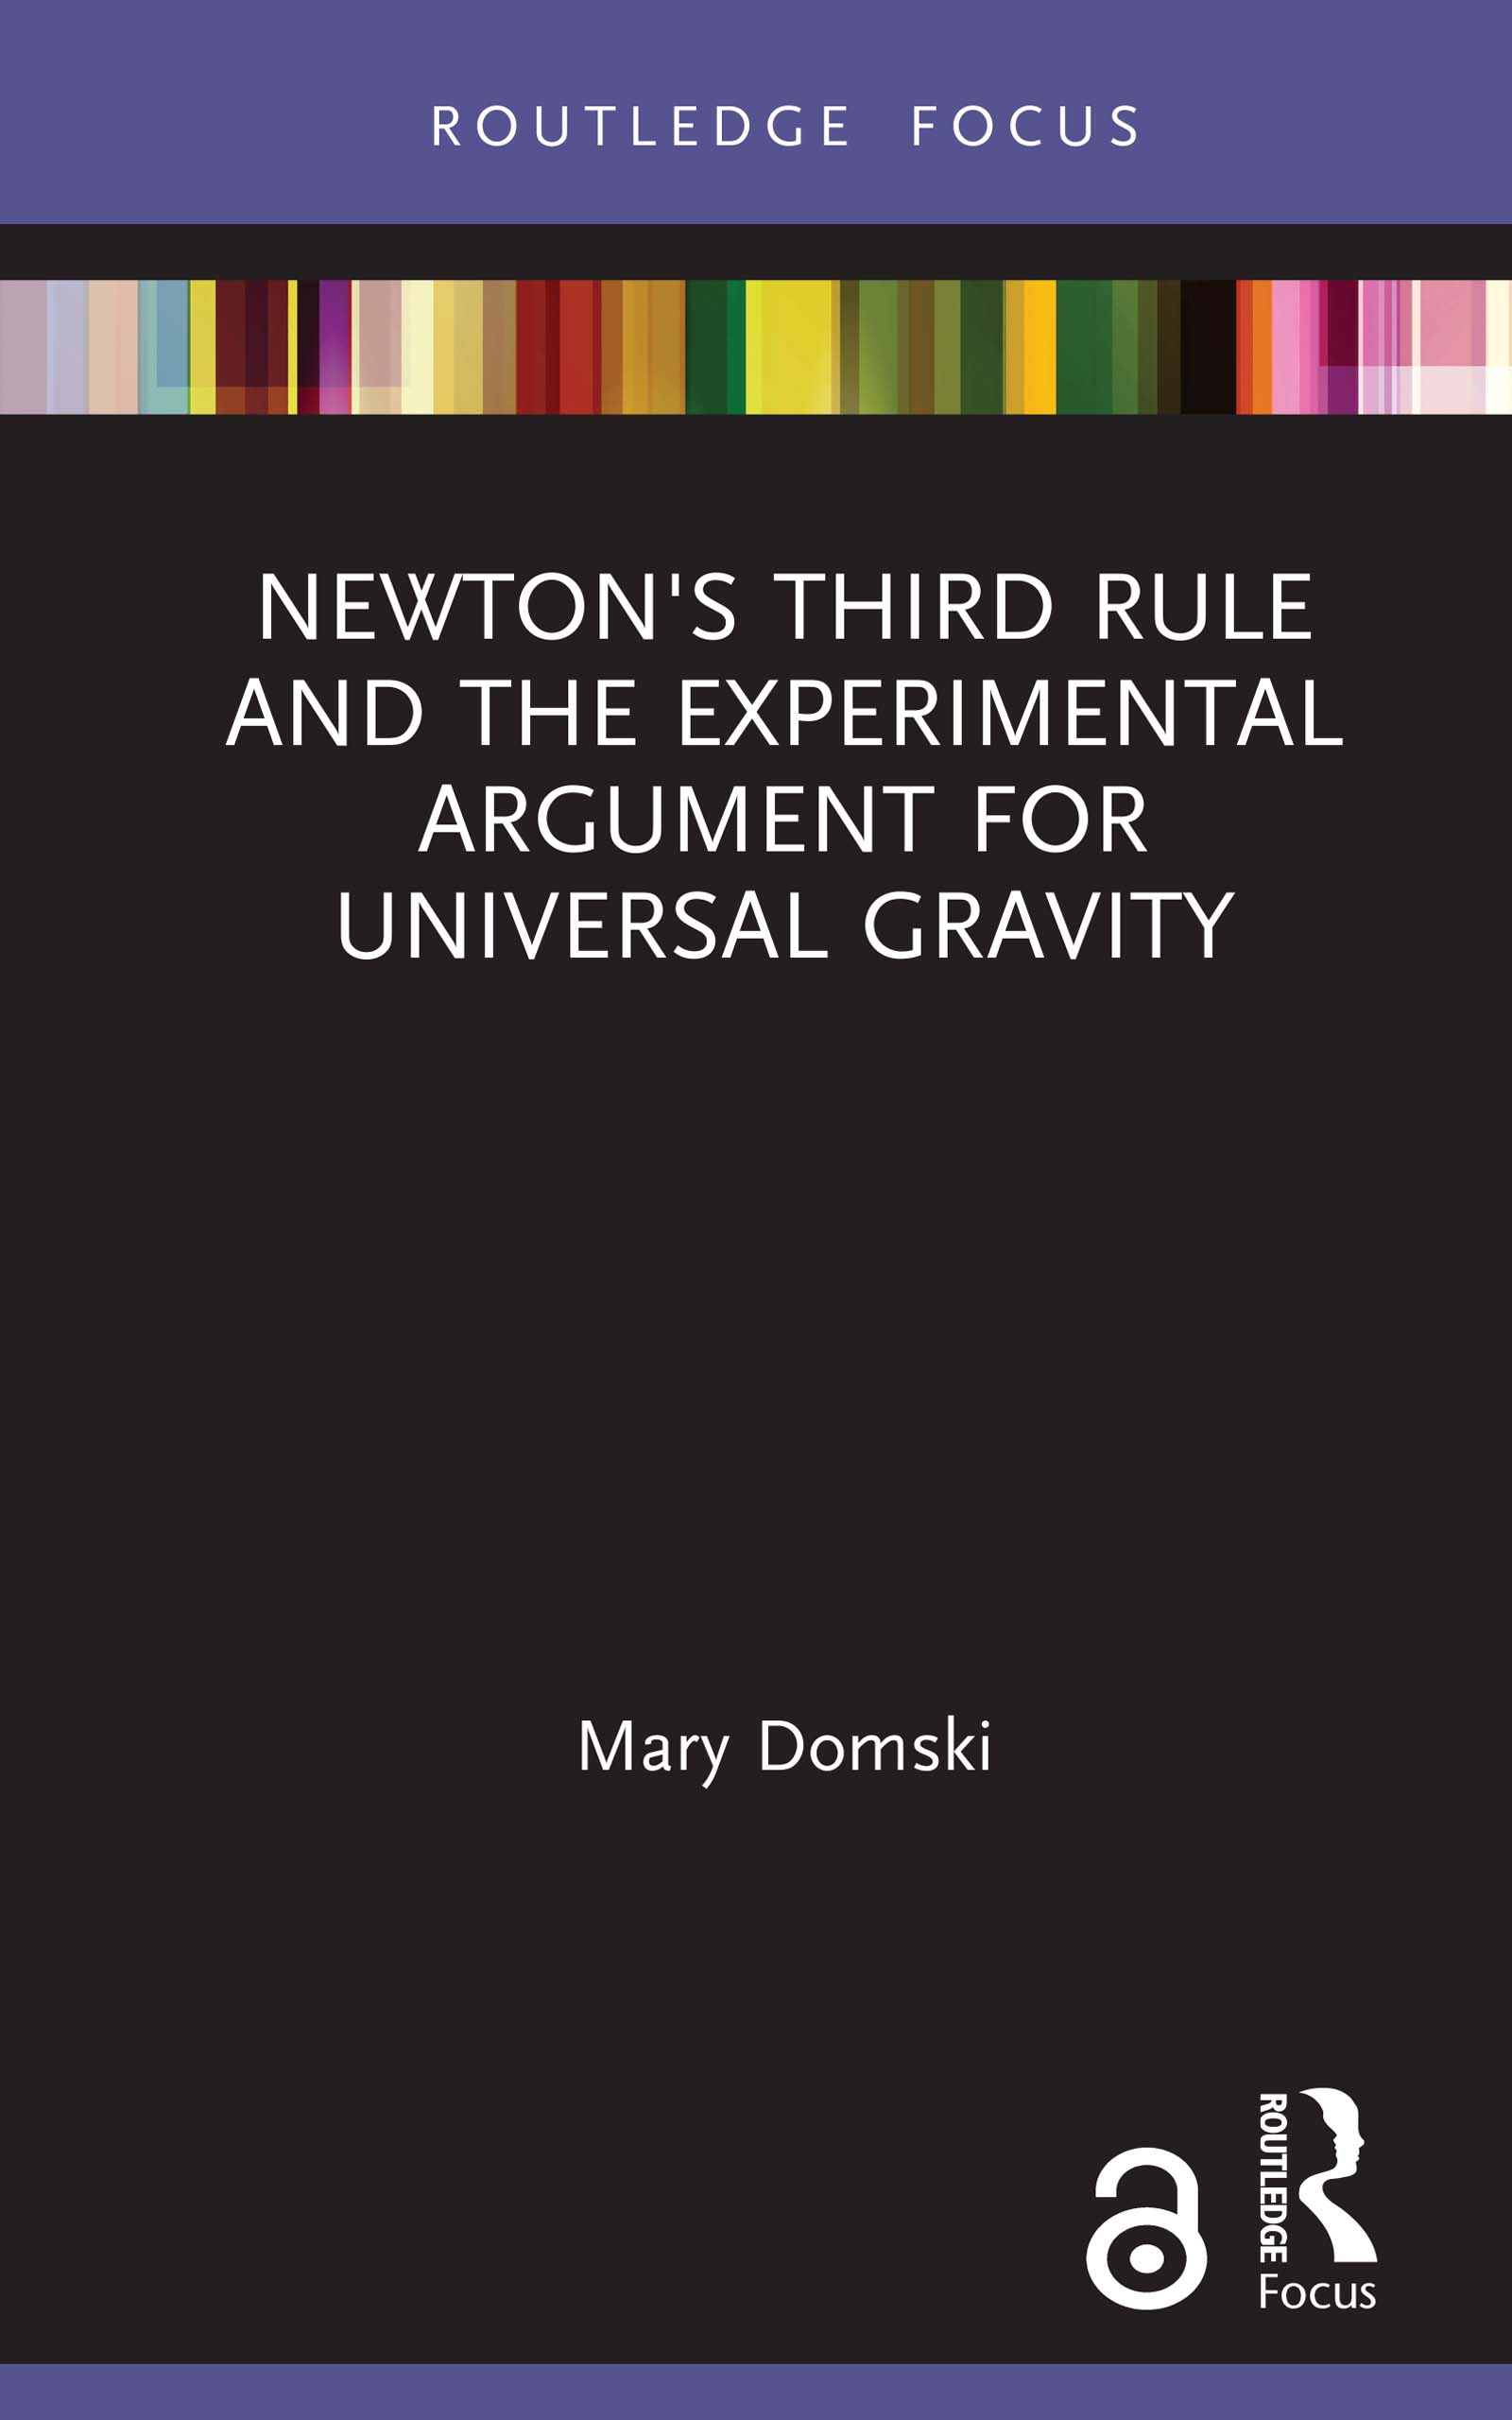 Newton's Third Rule and the Experimental Argument for Universal Gravity